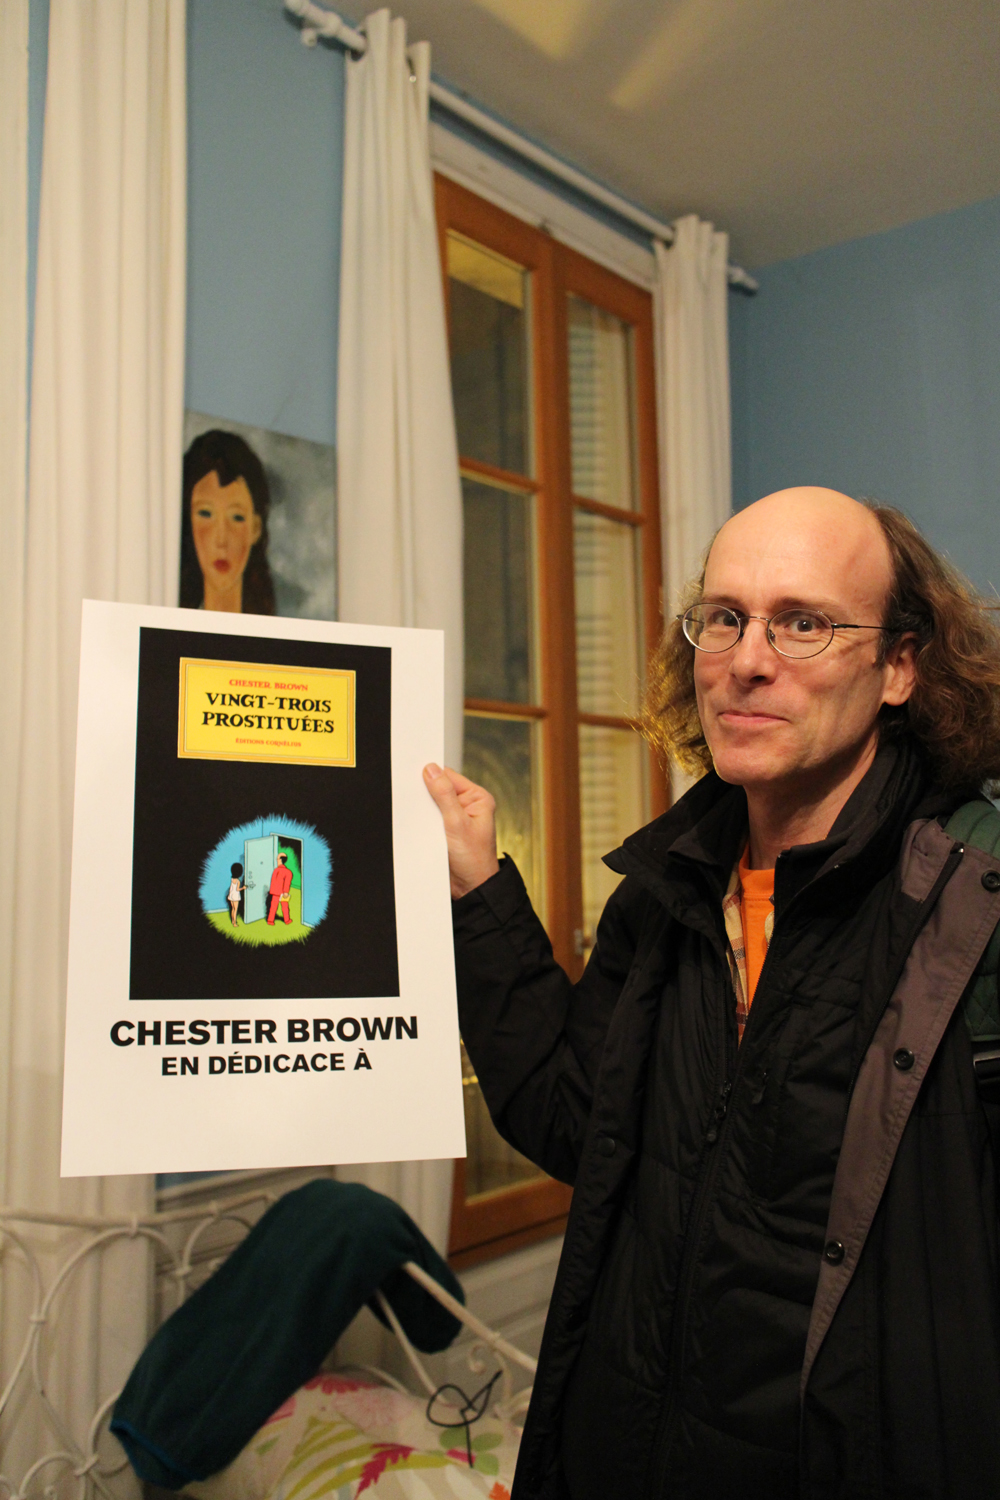 chester brown prostituees